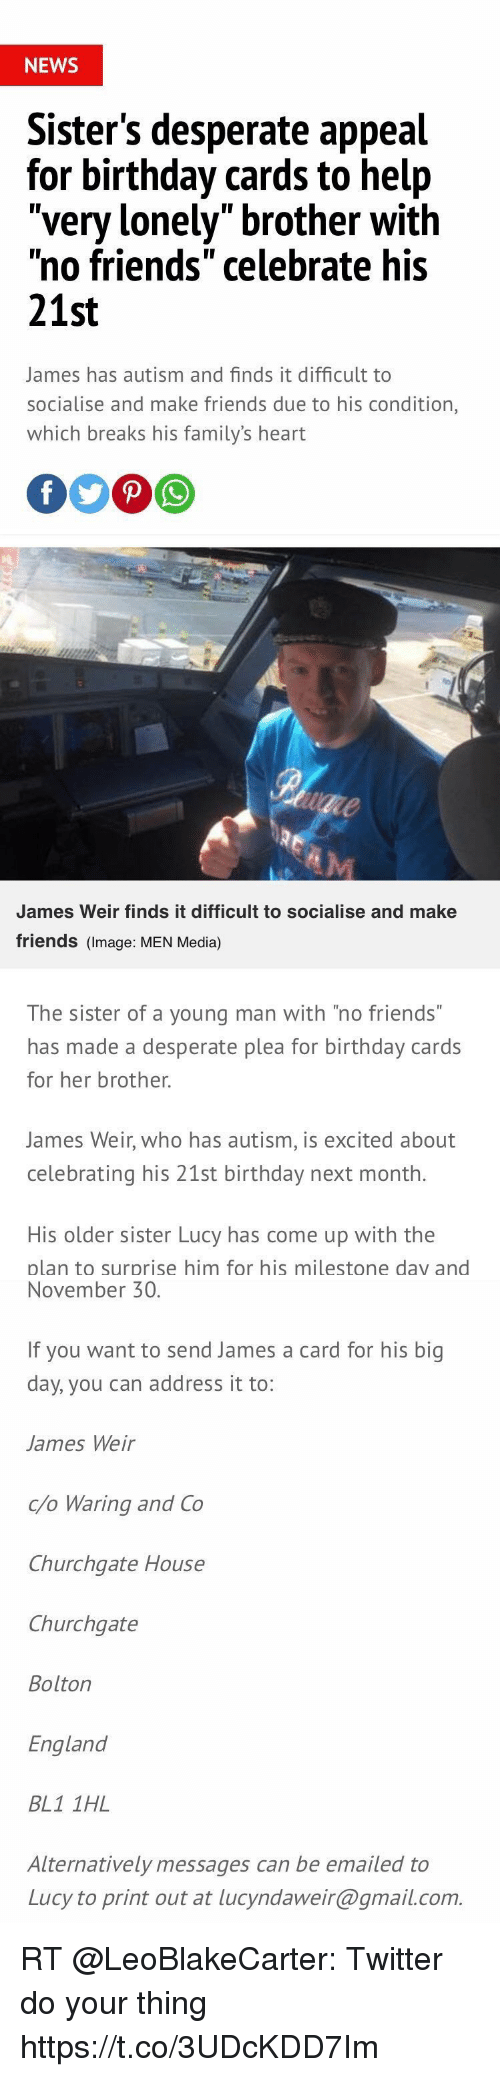 NEWS Sisters Desperate Appeal For Birthday Cards To Help Very